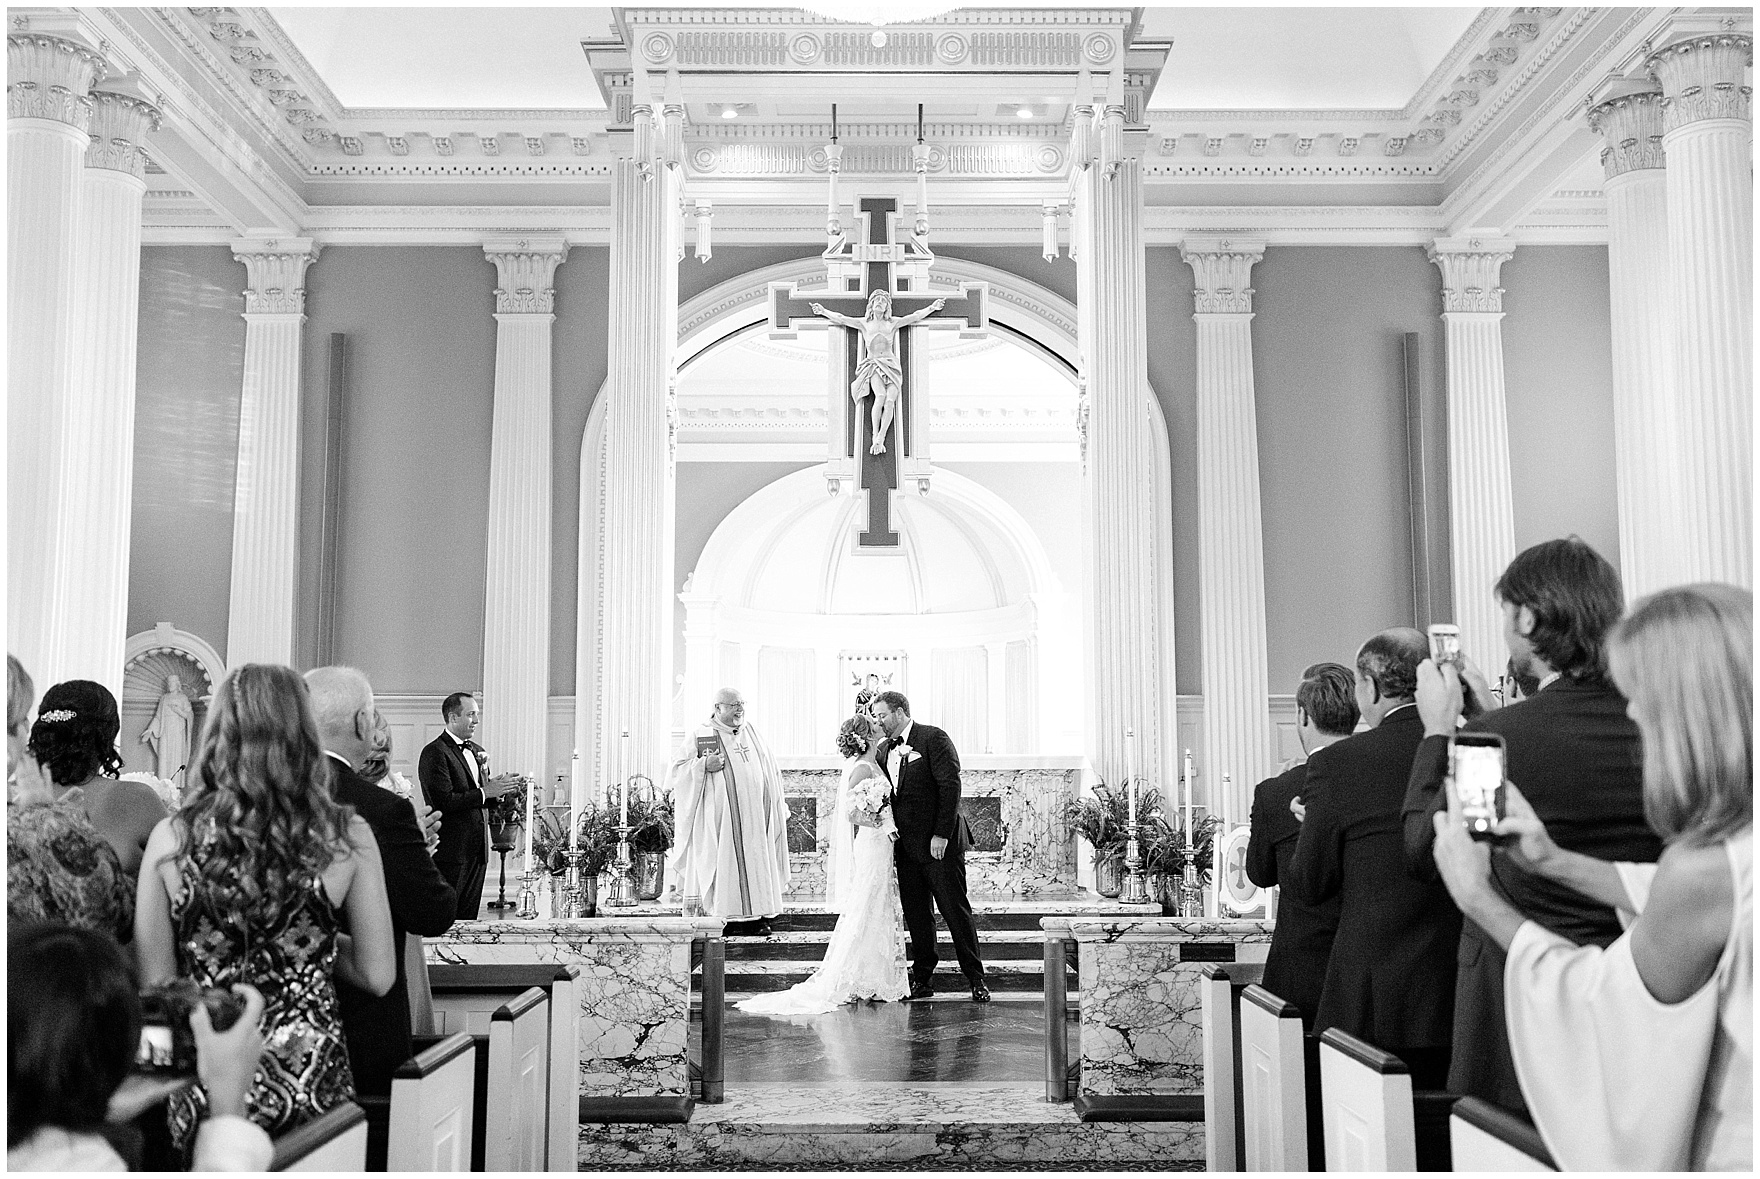 The bride and groom share their first kiss during a Glen Club Glenview Illinois wedding.